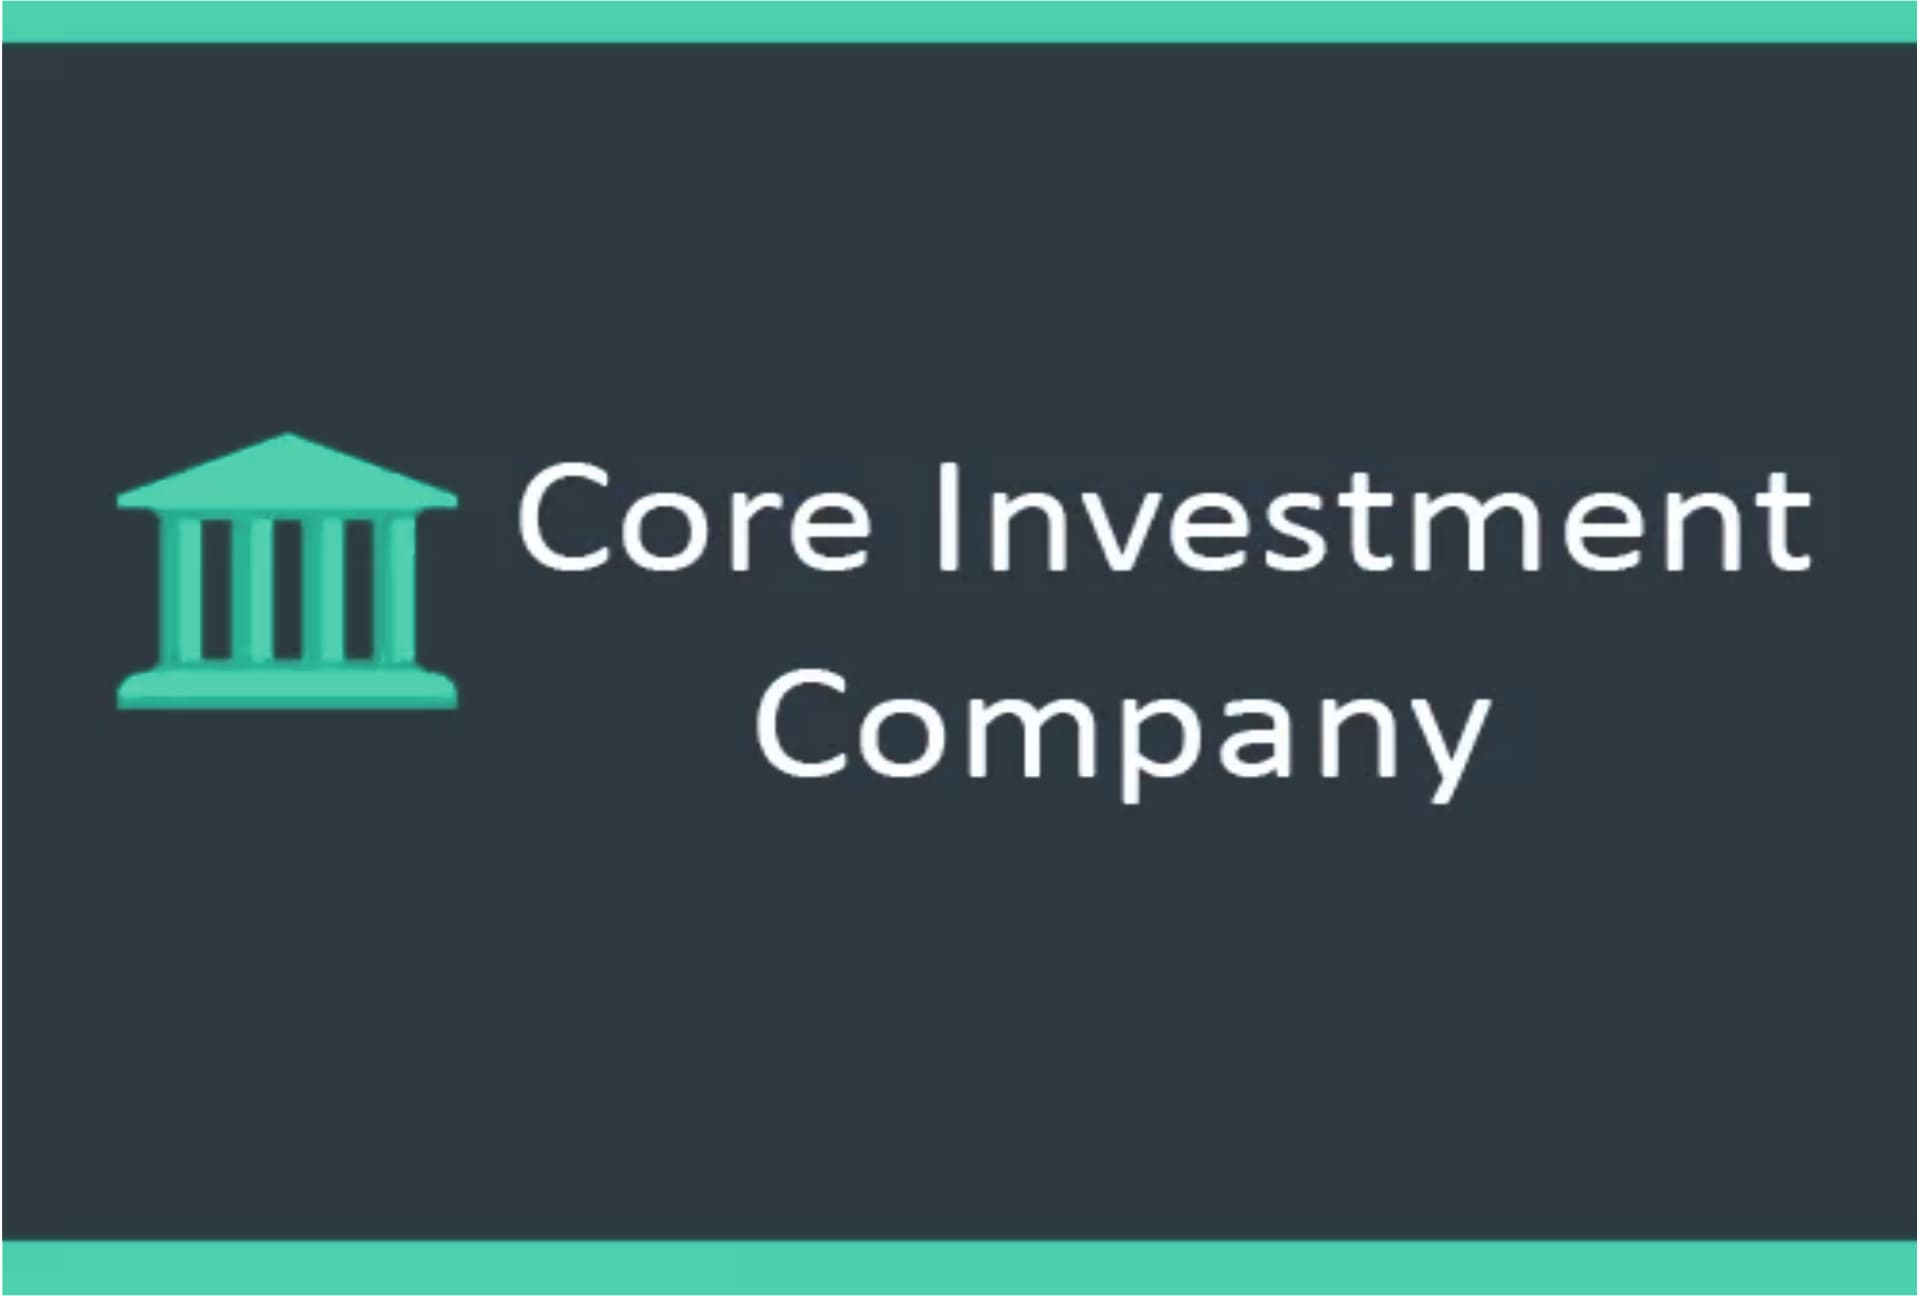 Reserve Bank of India: Review of Guidelines for Core Investment Companies